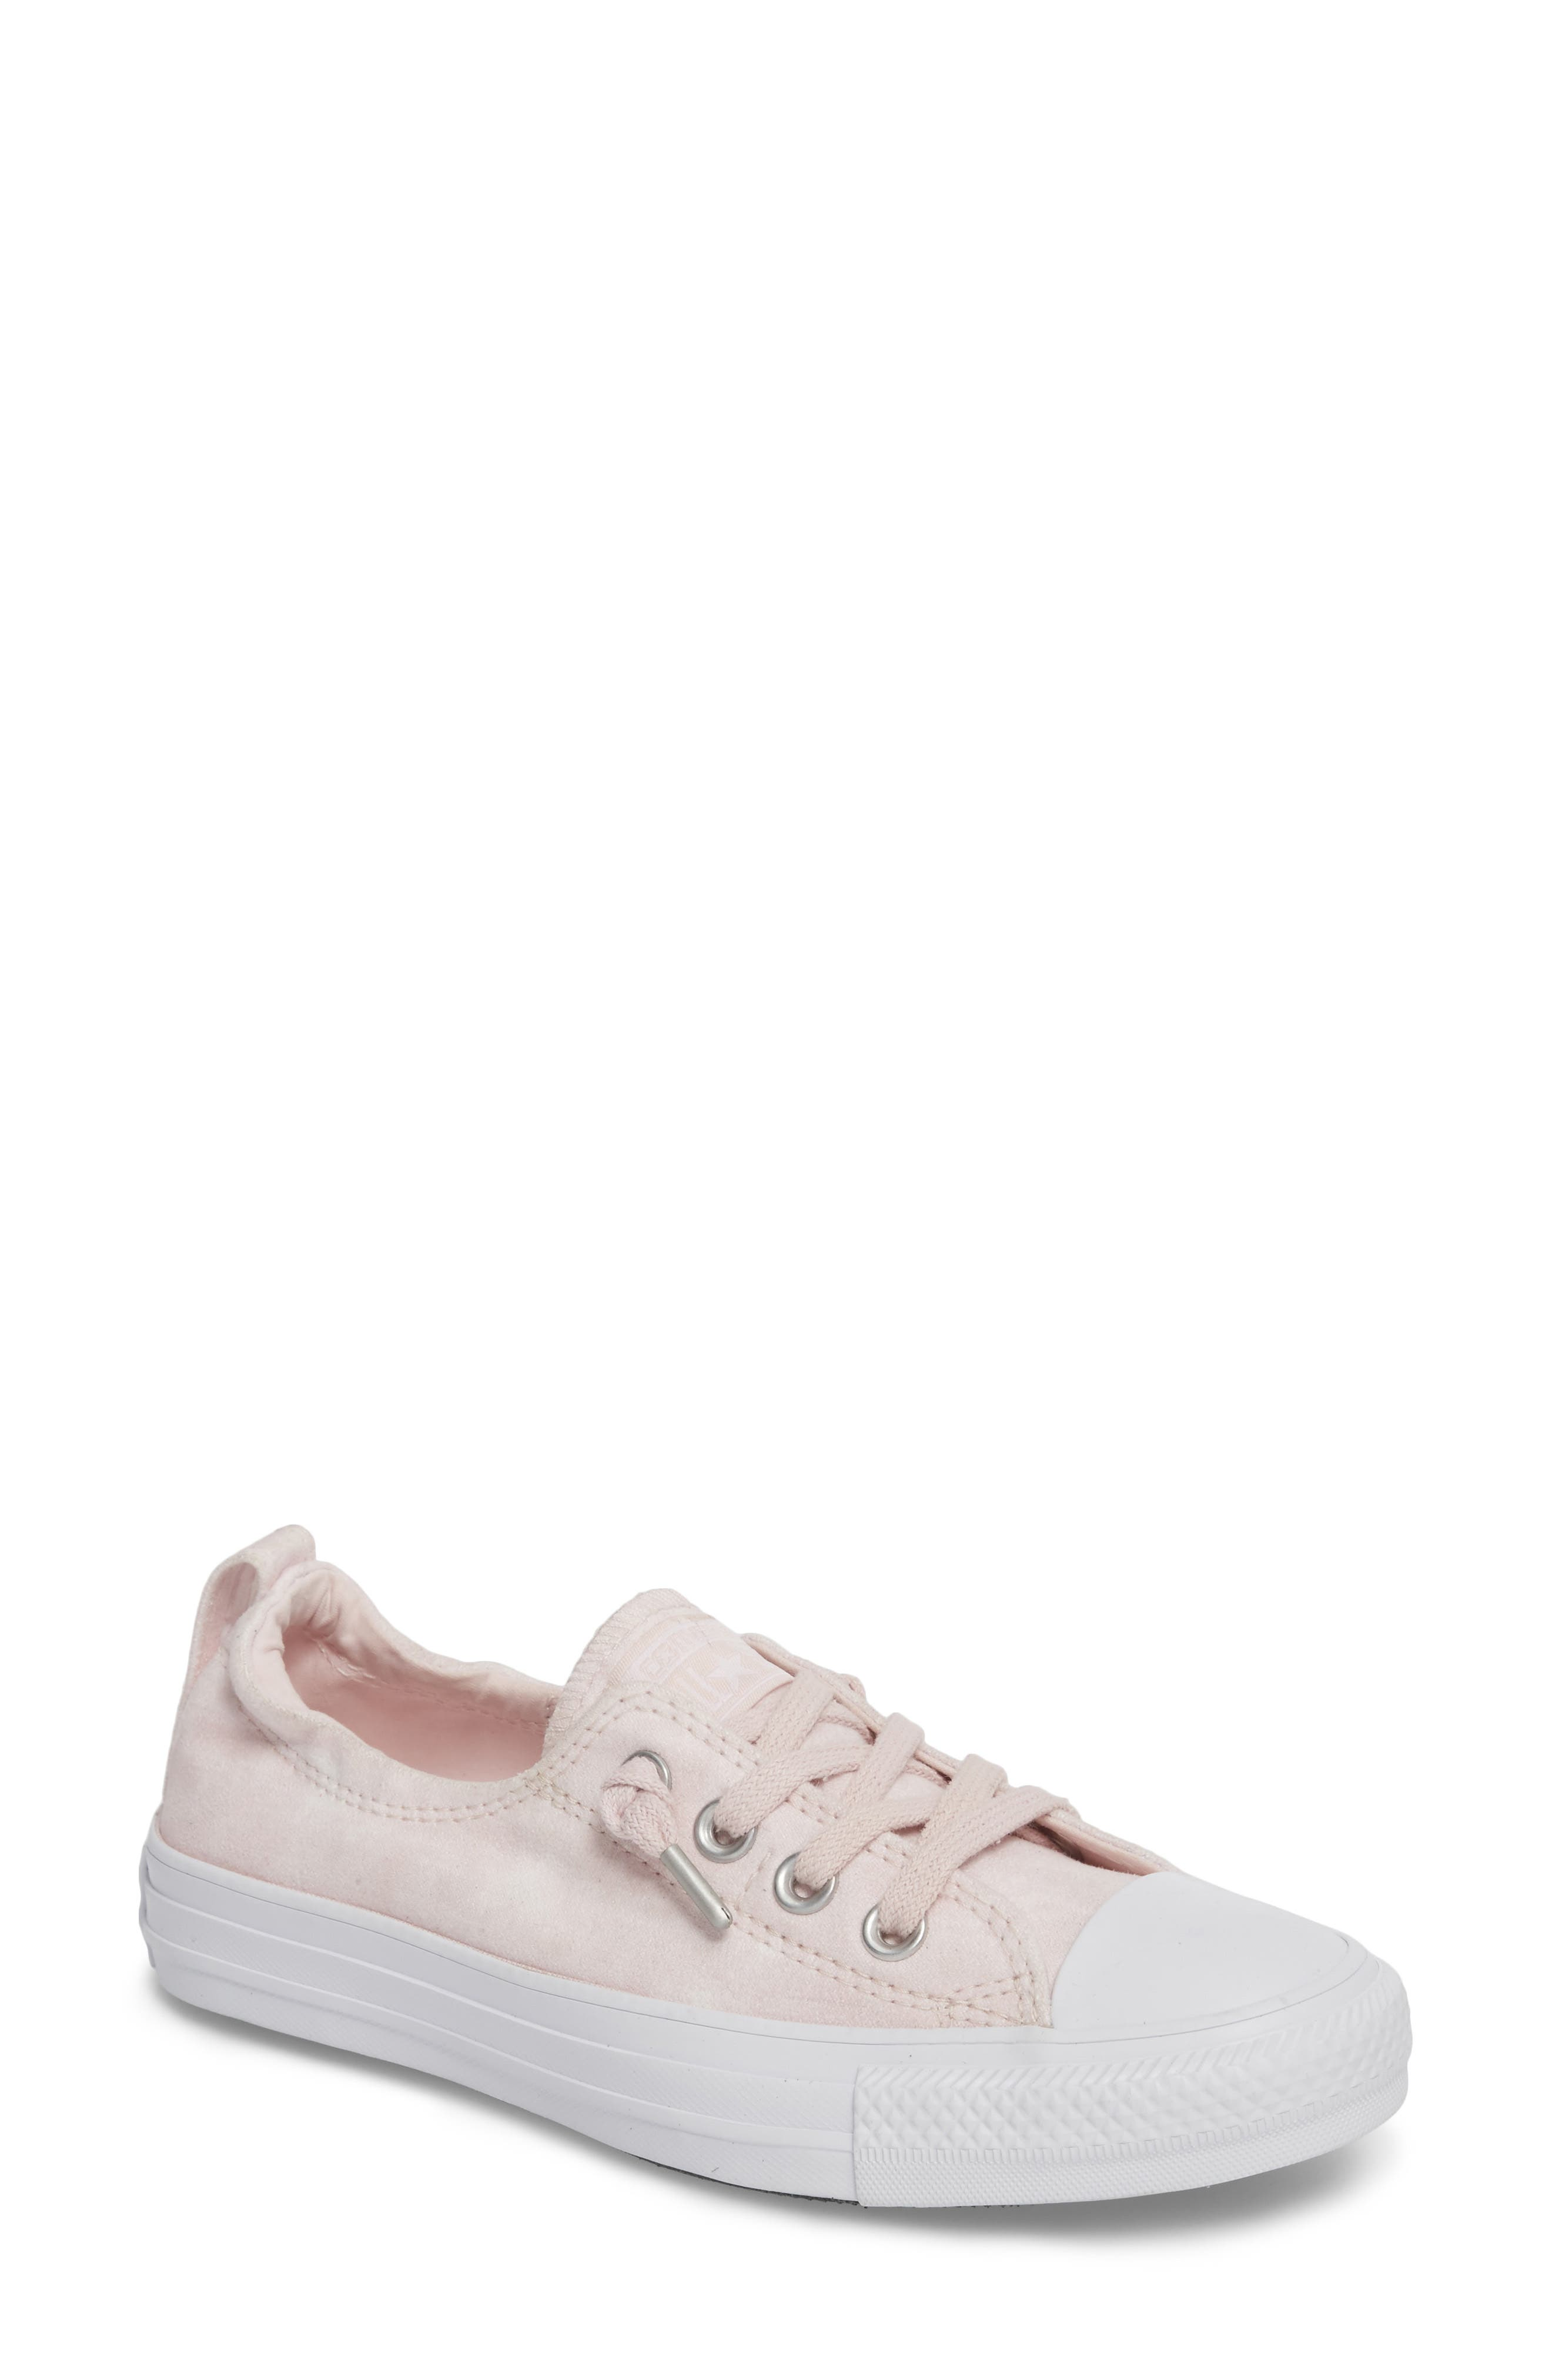 Chuck Taylor<sup>®</sup> All Star<sup>®</sup> Shoreline Peached Twill Sneaker,                         Main,                         color, Barely Rose